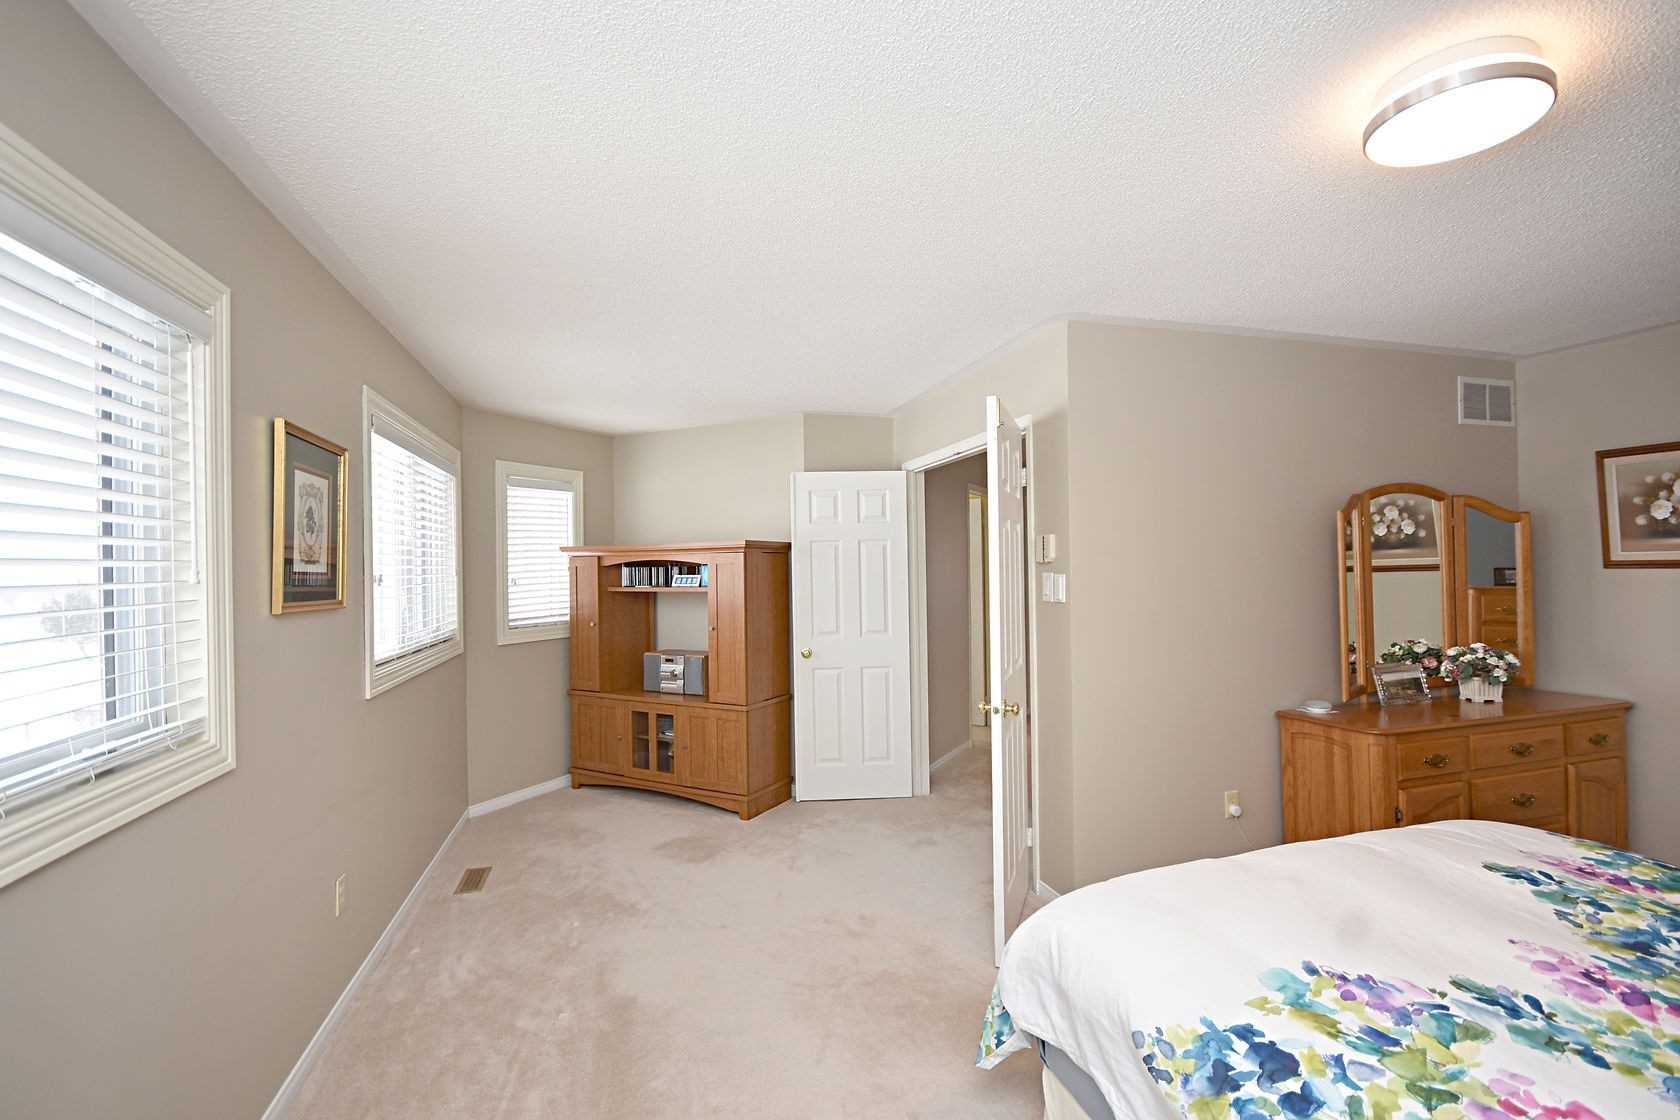 Listing W4726563 - Thumbmnail Photo # 26